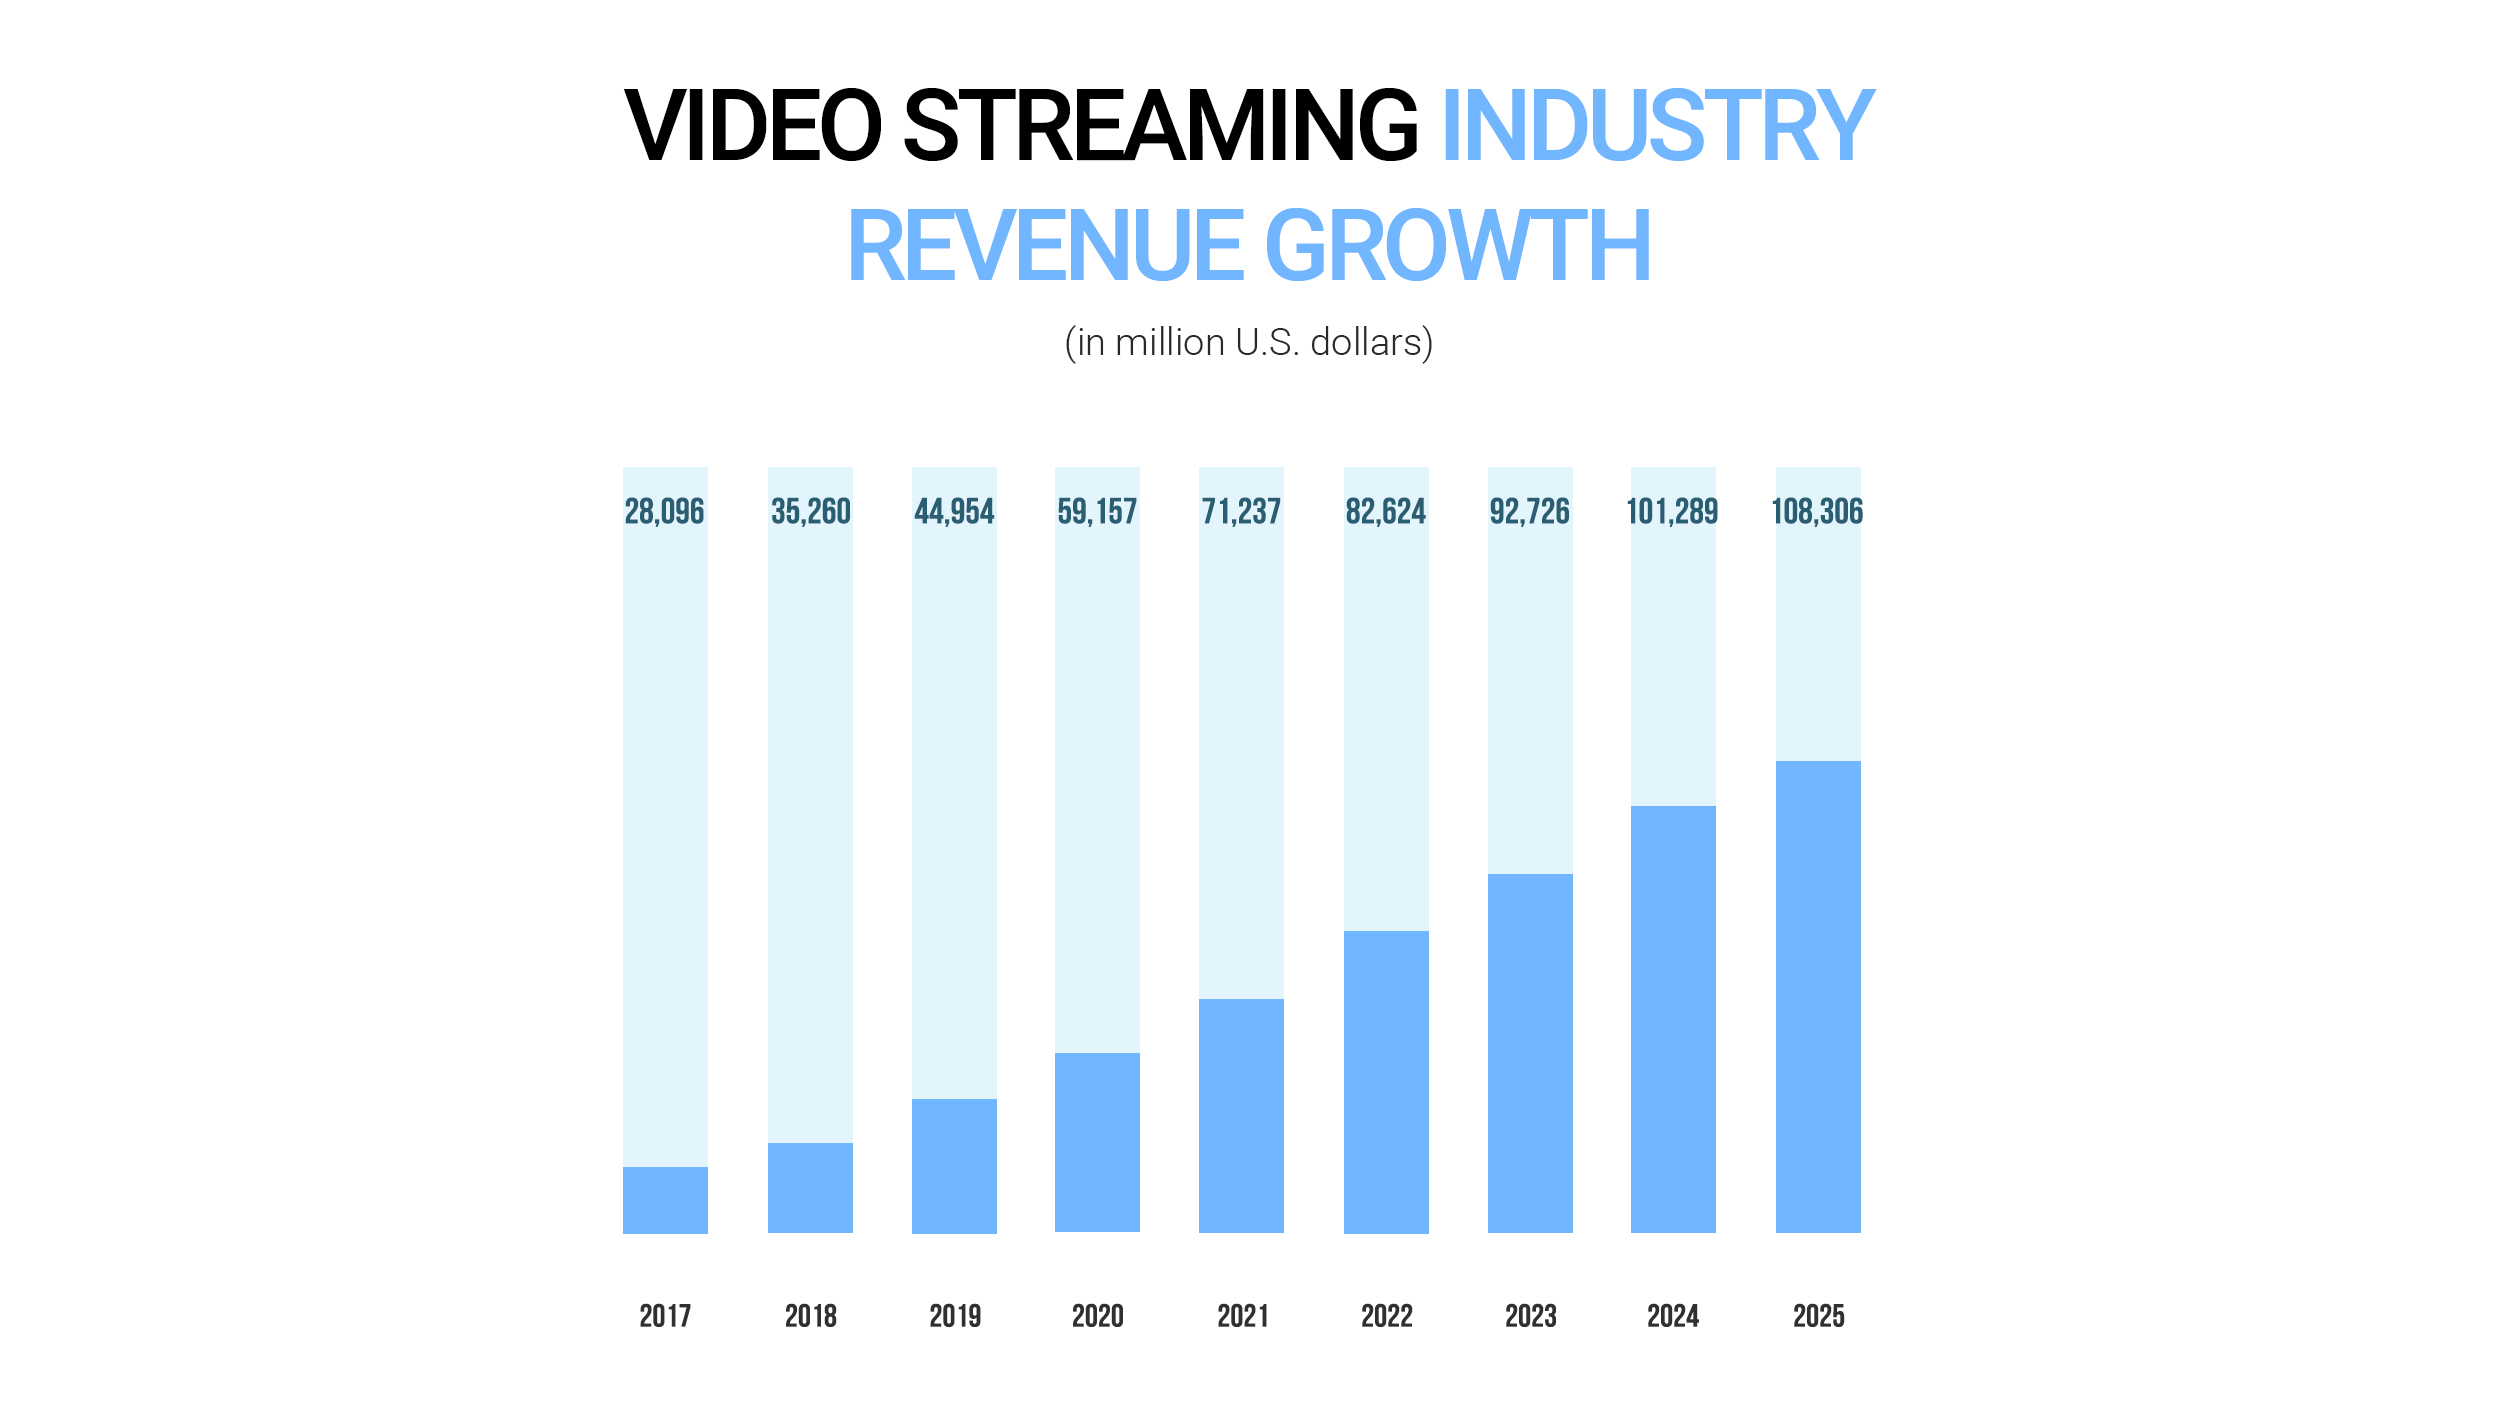 Video streaming industry revenue growth